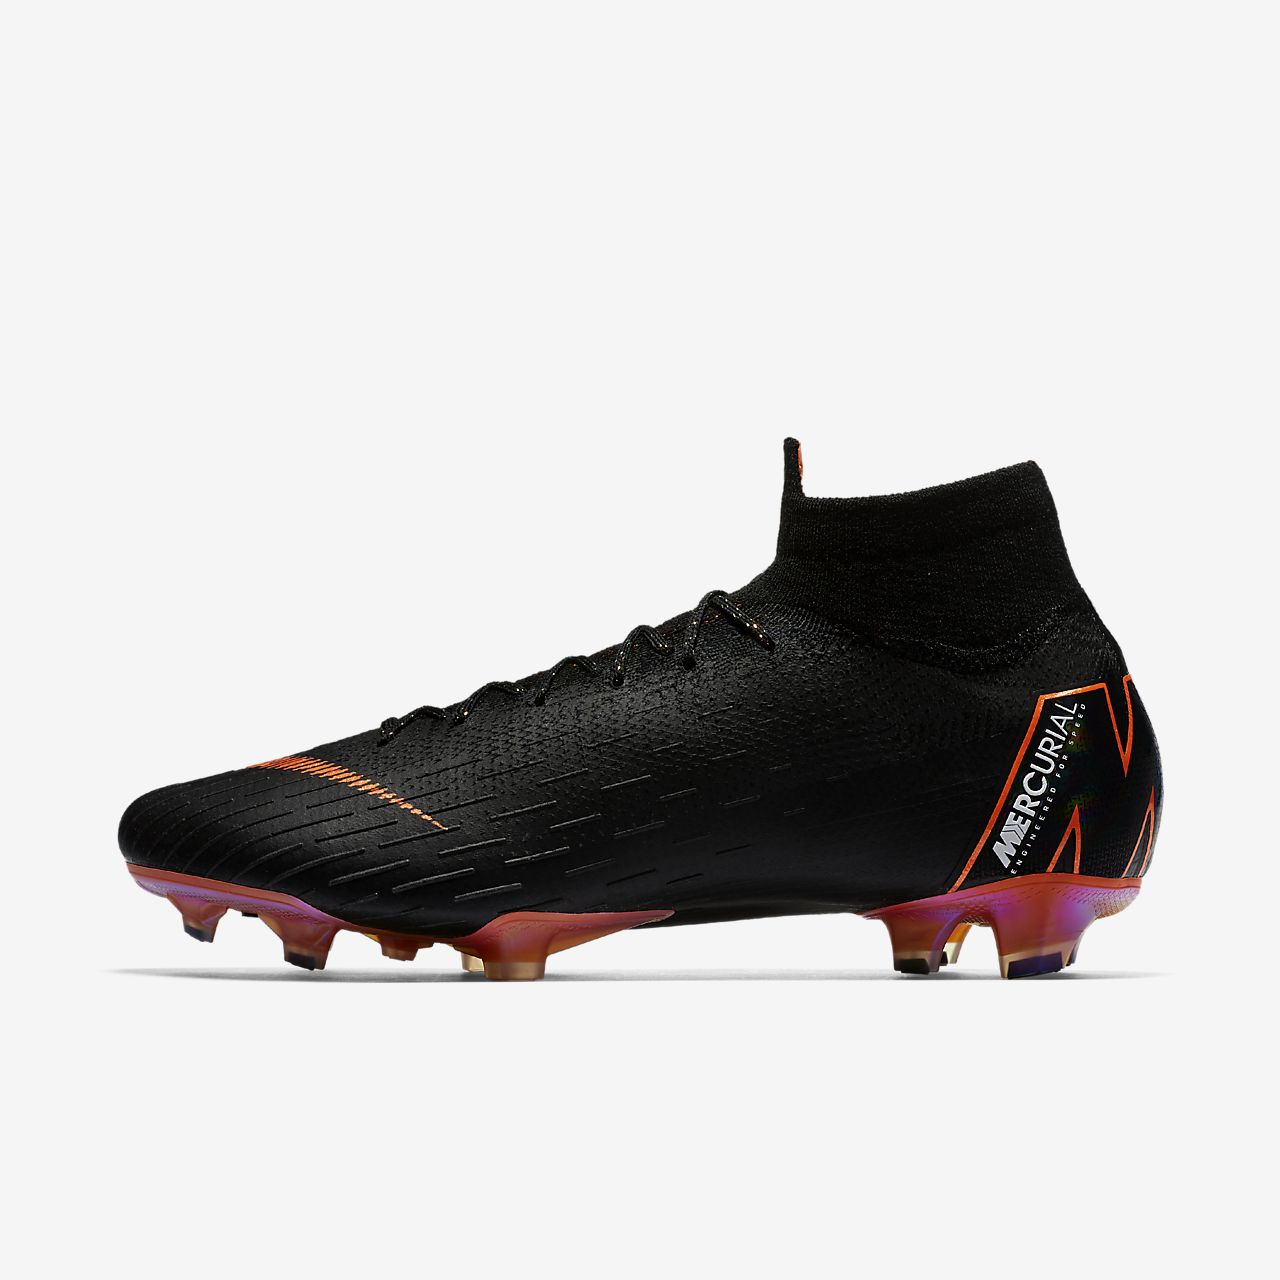 ... Nike Mercurial Superfly 360 Elite Firm-Ground Football Boot